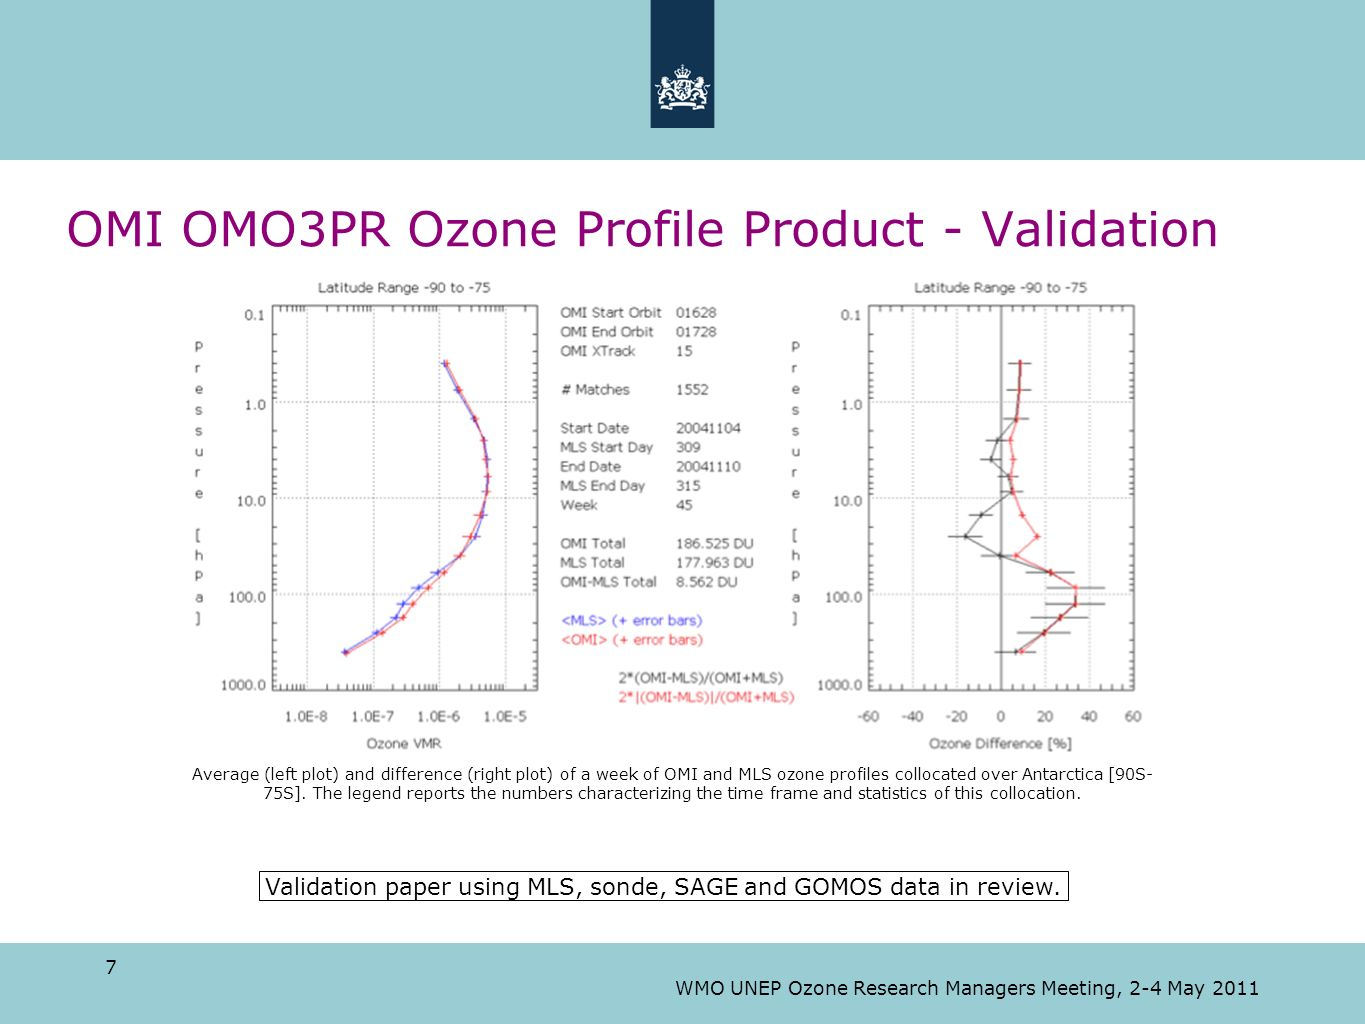 7 WMO UNEP Ozone Research Managers Meeting, 2-4 May 2011 OMI OMO3PR Ozone Profile Product - Validation 7 Validation paper using MLS, sonde, SAGE and G